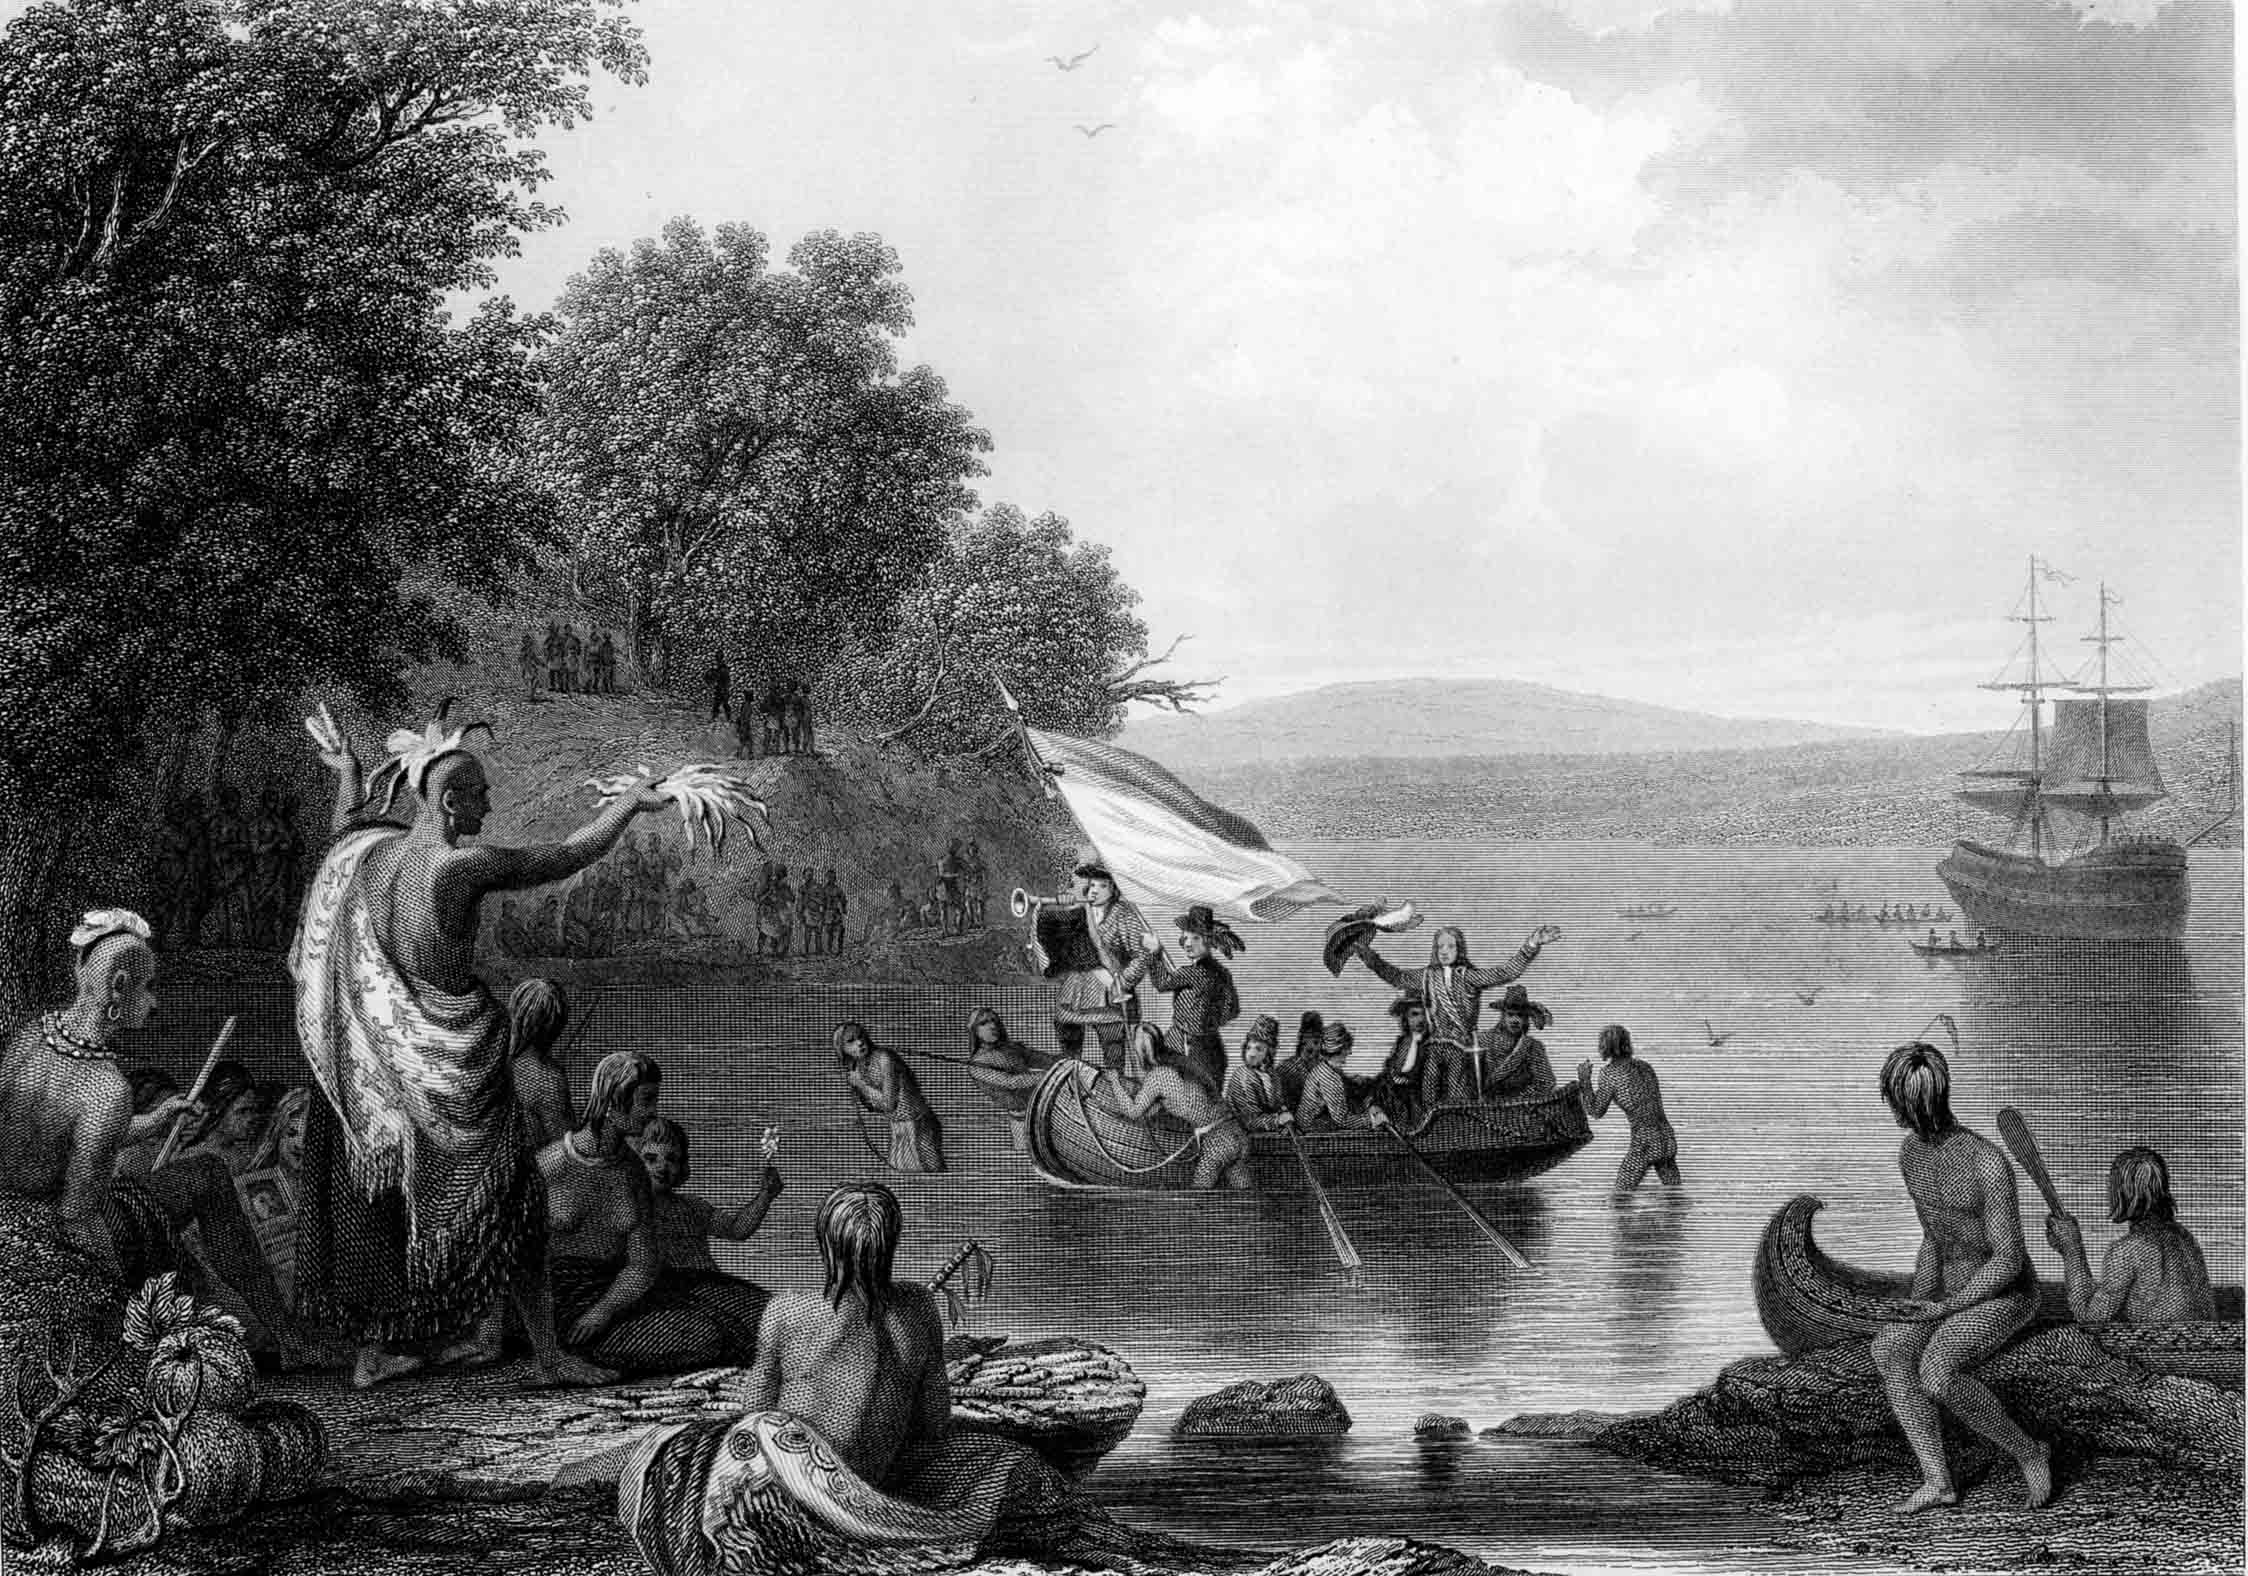 The Landing of Henrick Hudson, based on a painting by Robert Weir,  published by Martin, Johnson & Co., New York, 1857. (Gilder Lehrman  Collection)